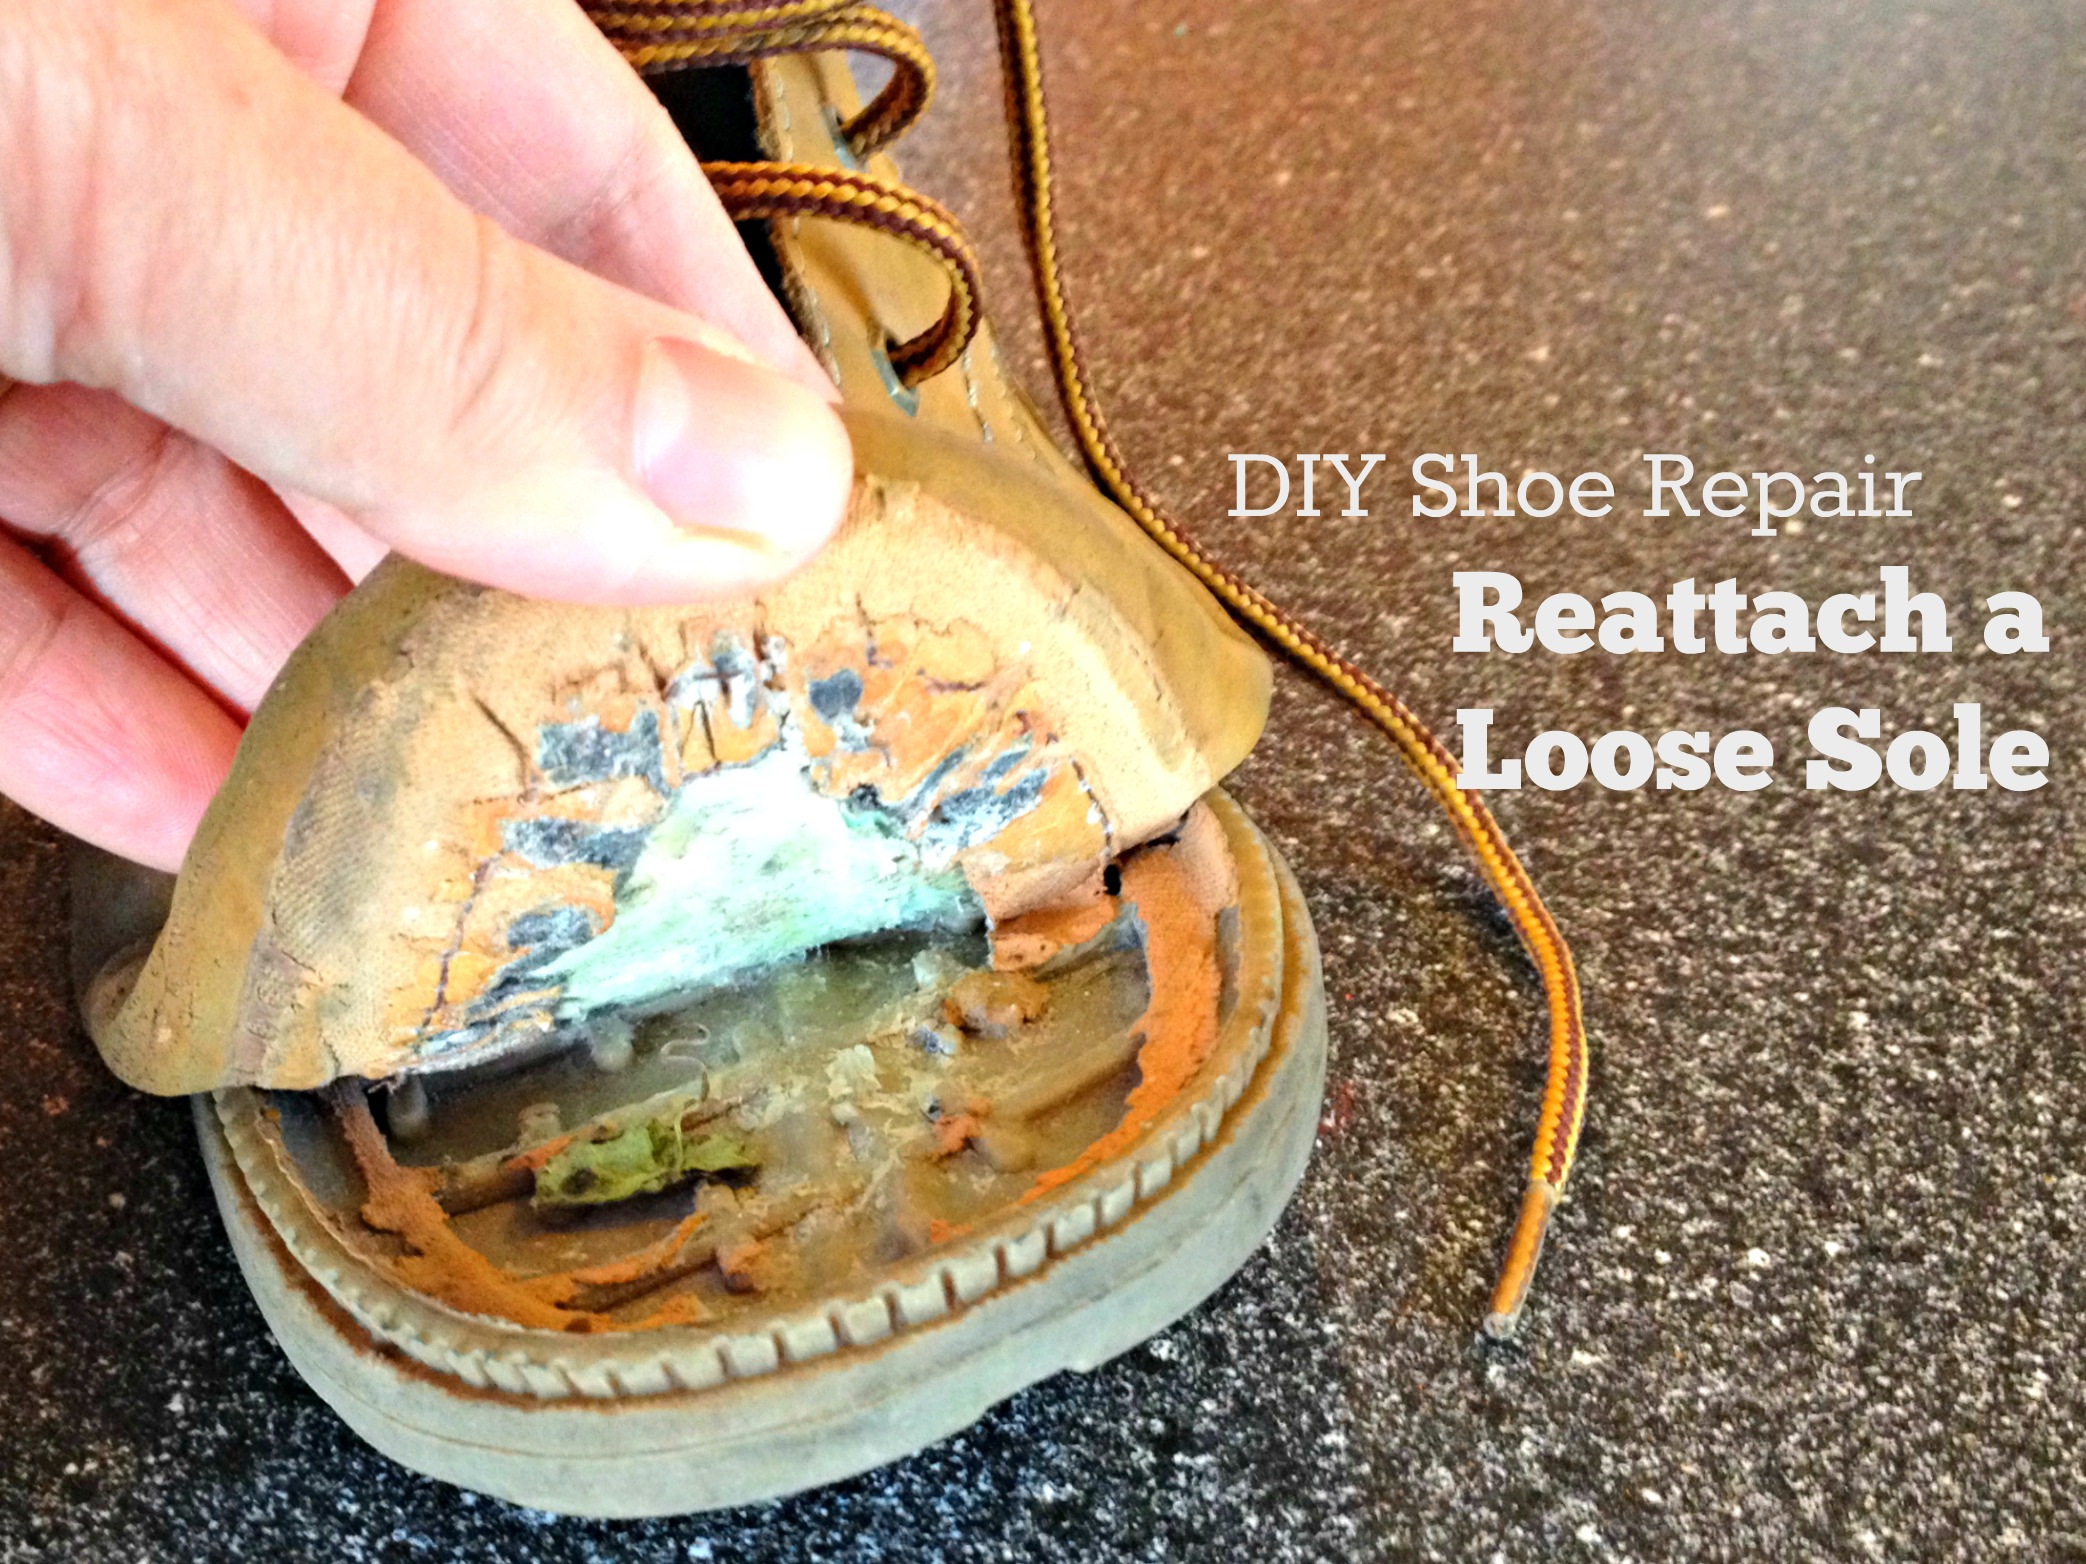 Diy Shoe Repair How To Reattach A Loose Sole Frugal Upstate